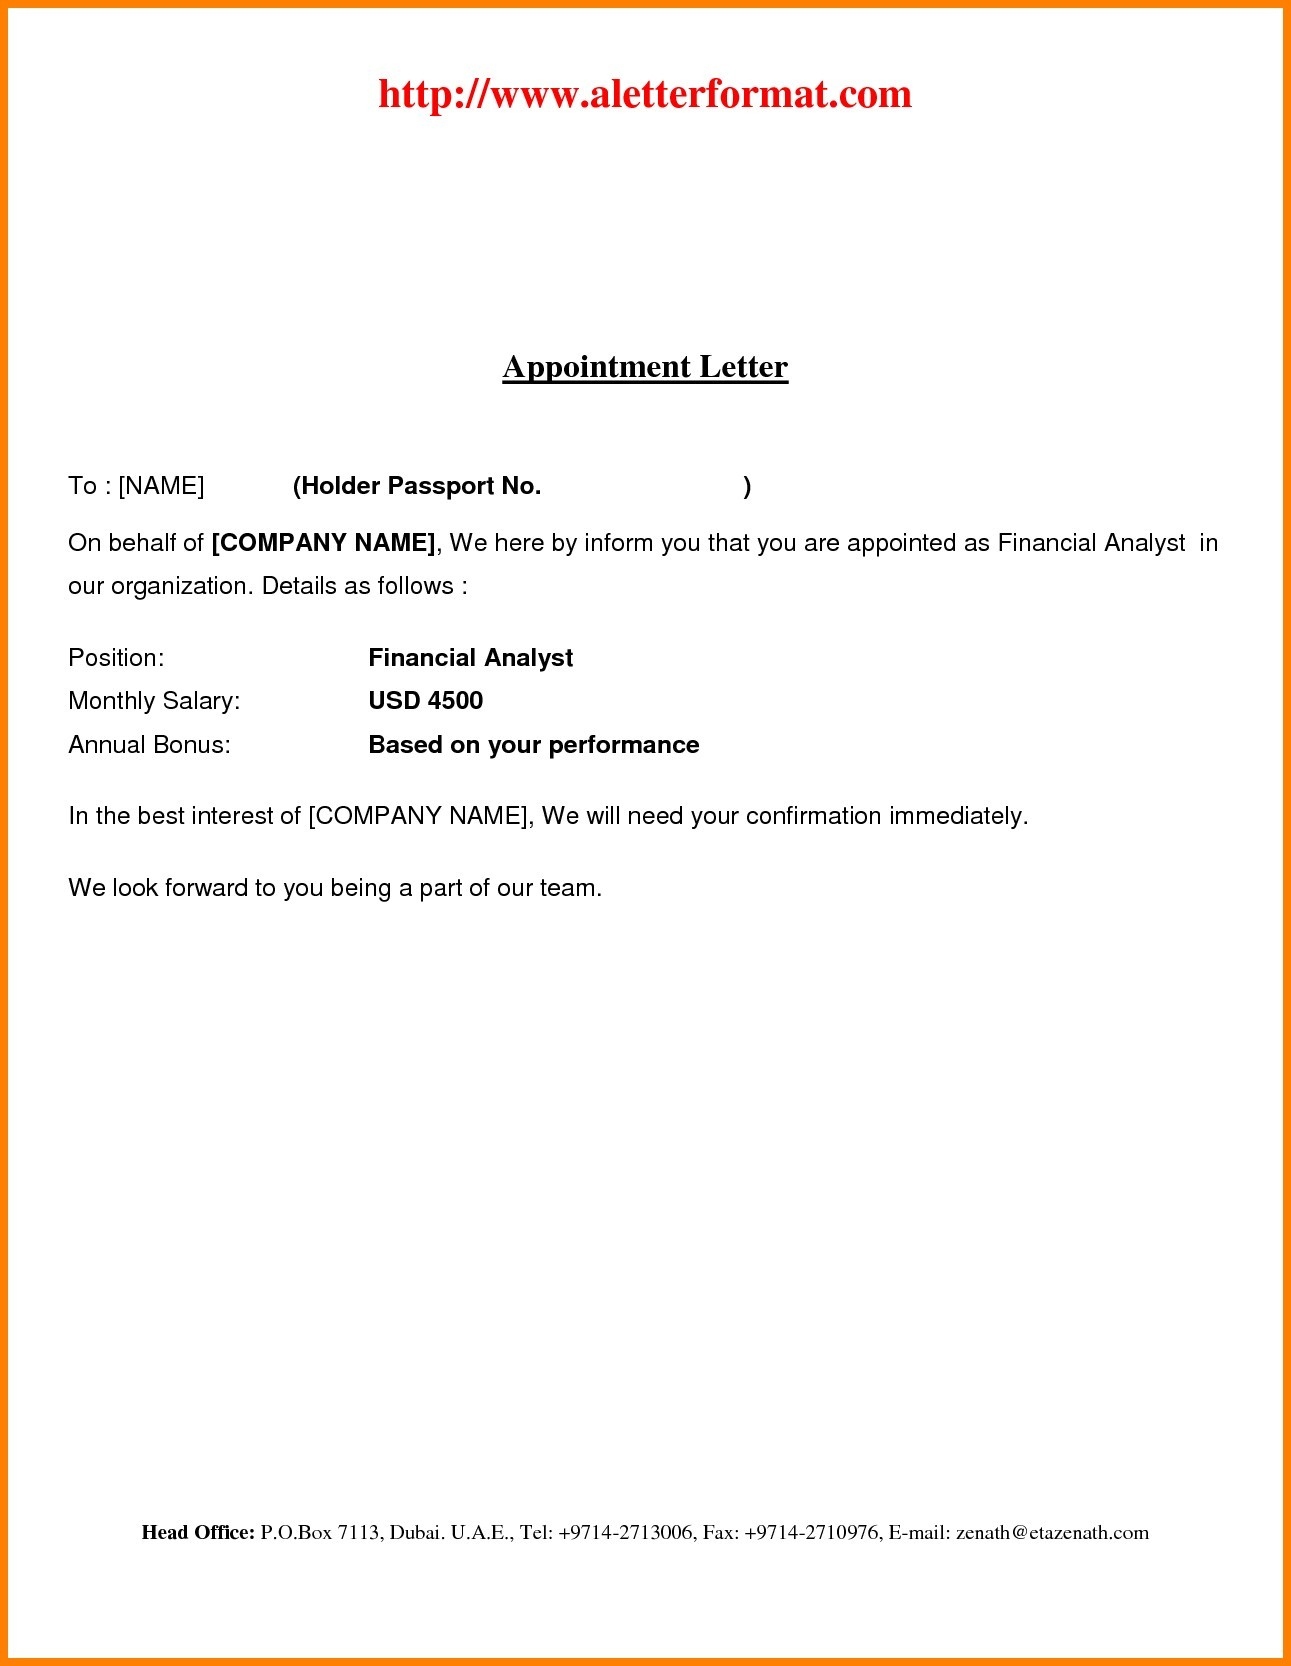 conditional offer of employment letter template Collection-offer 7-p